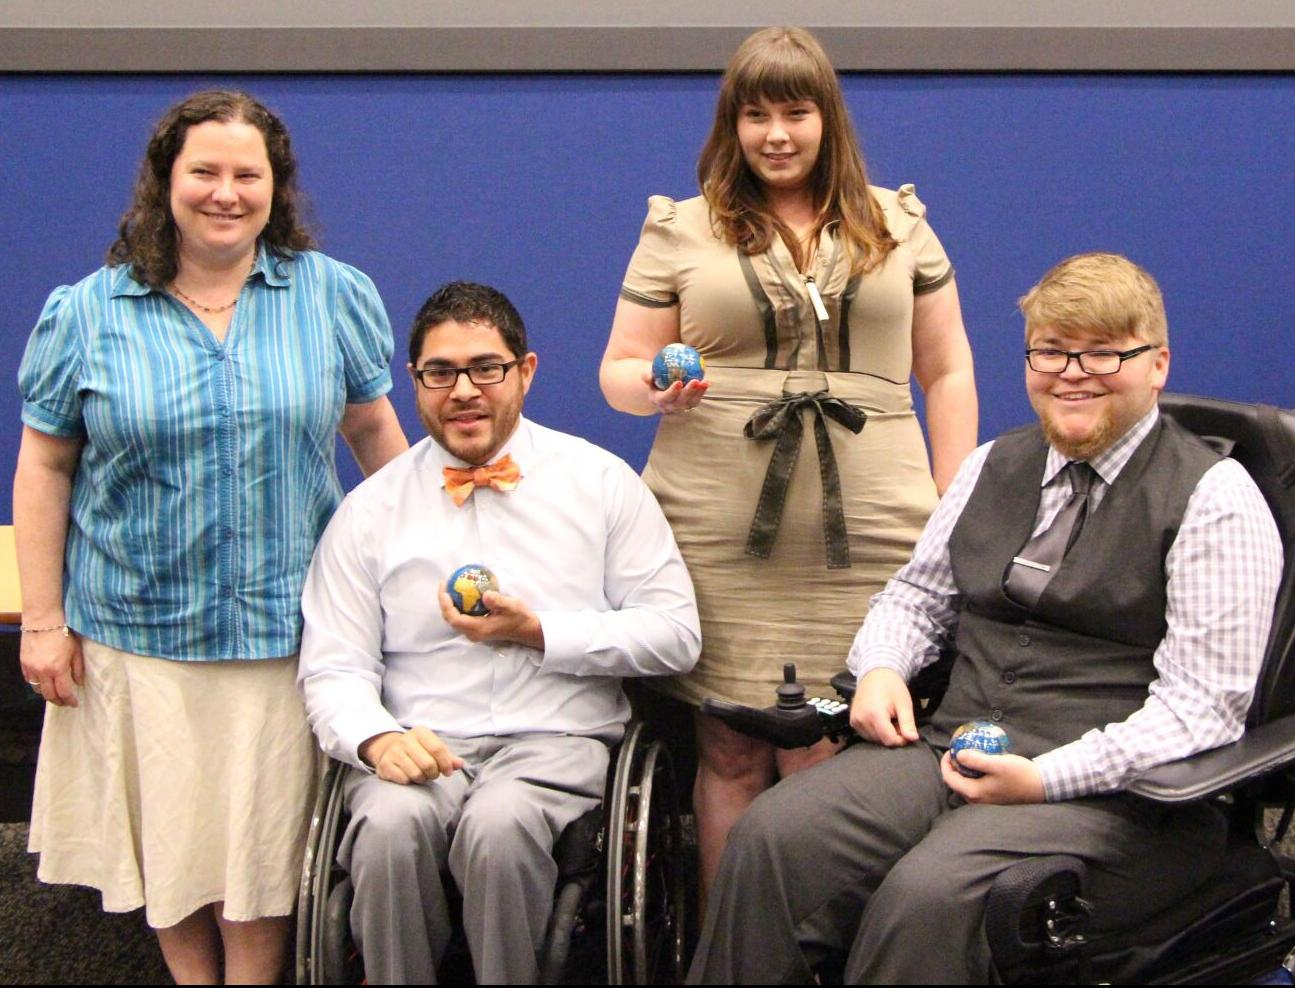 Disability studies director advocates for disability awareness, education